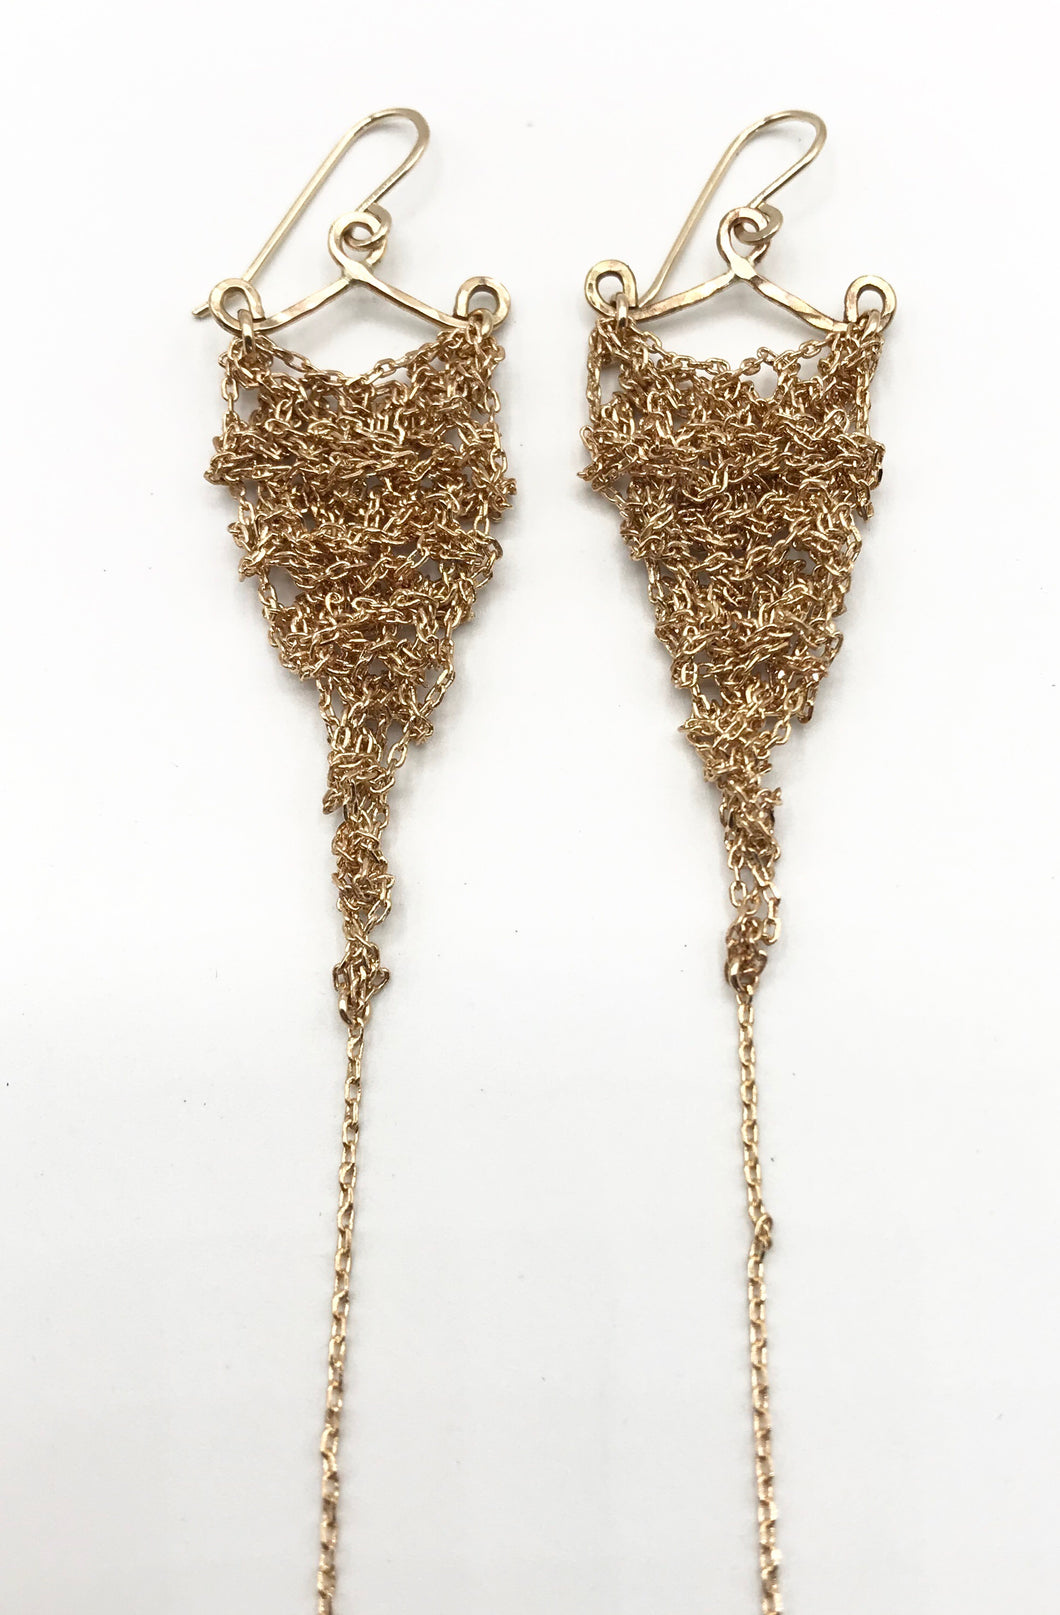 XS gold earrings